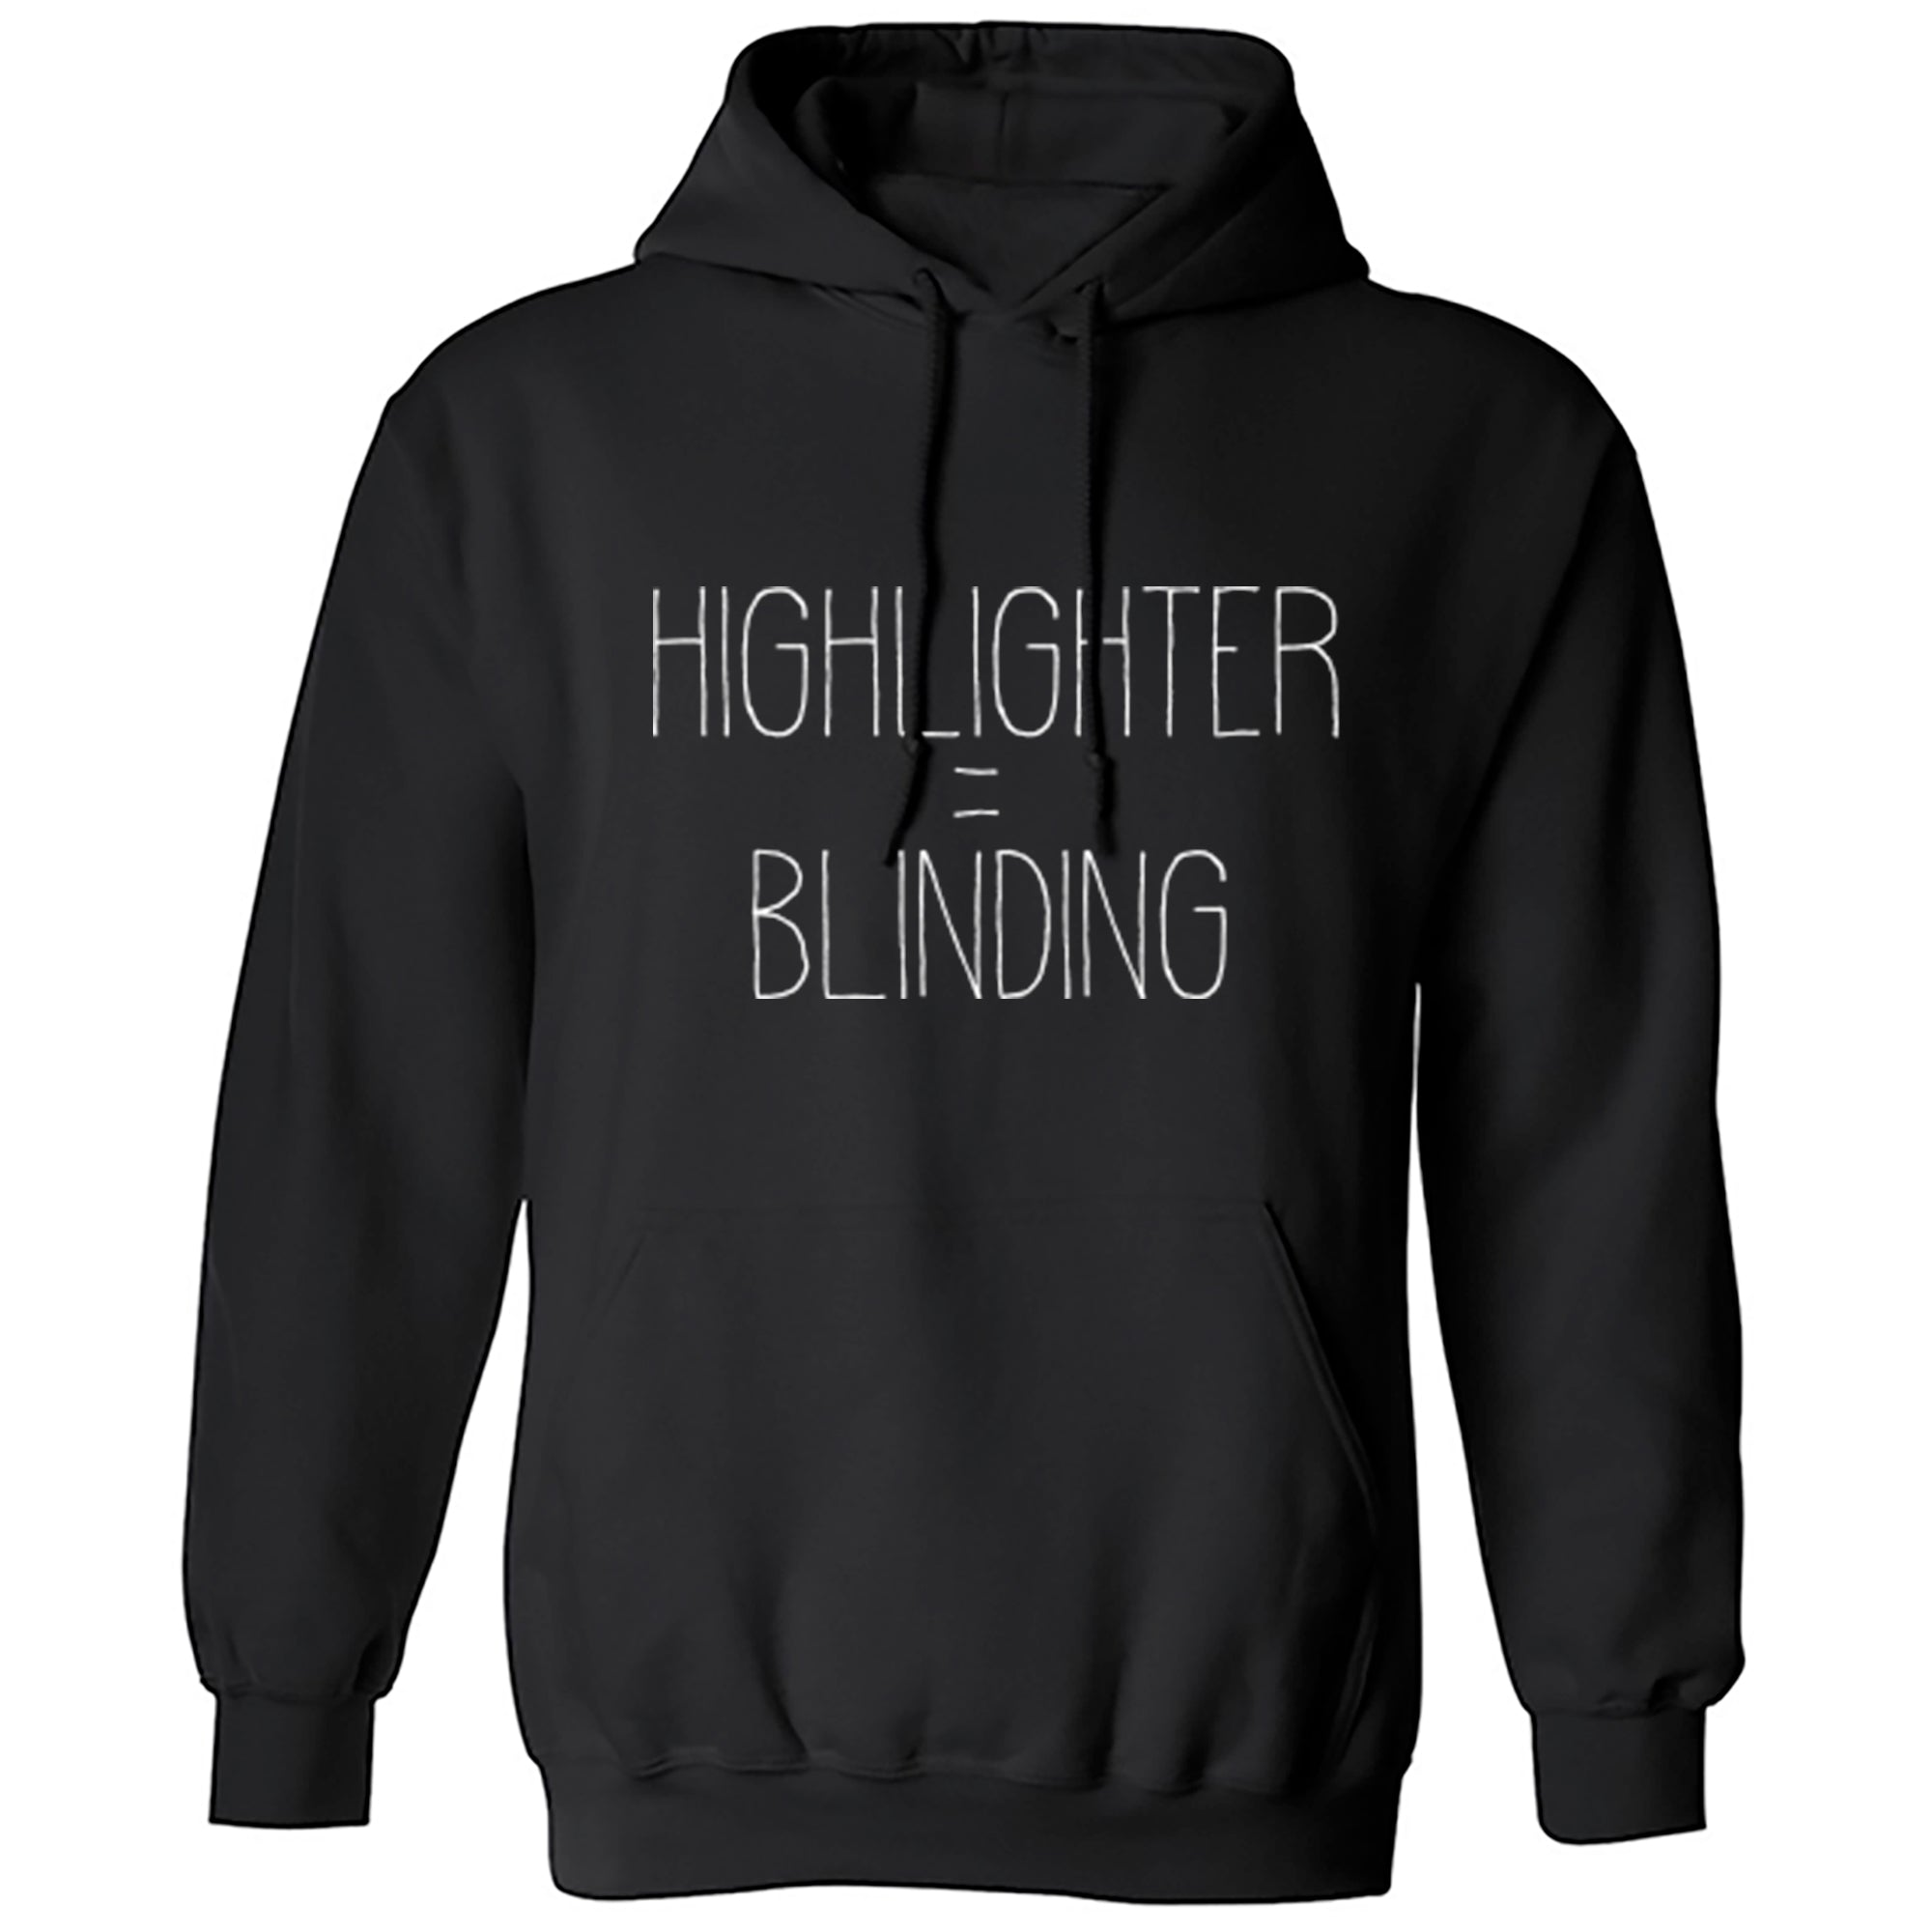 Highlighter Is Blinding Unisex Hoodie S0409 - Illustrated Identity Ltd.